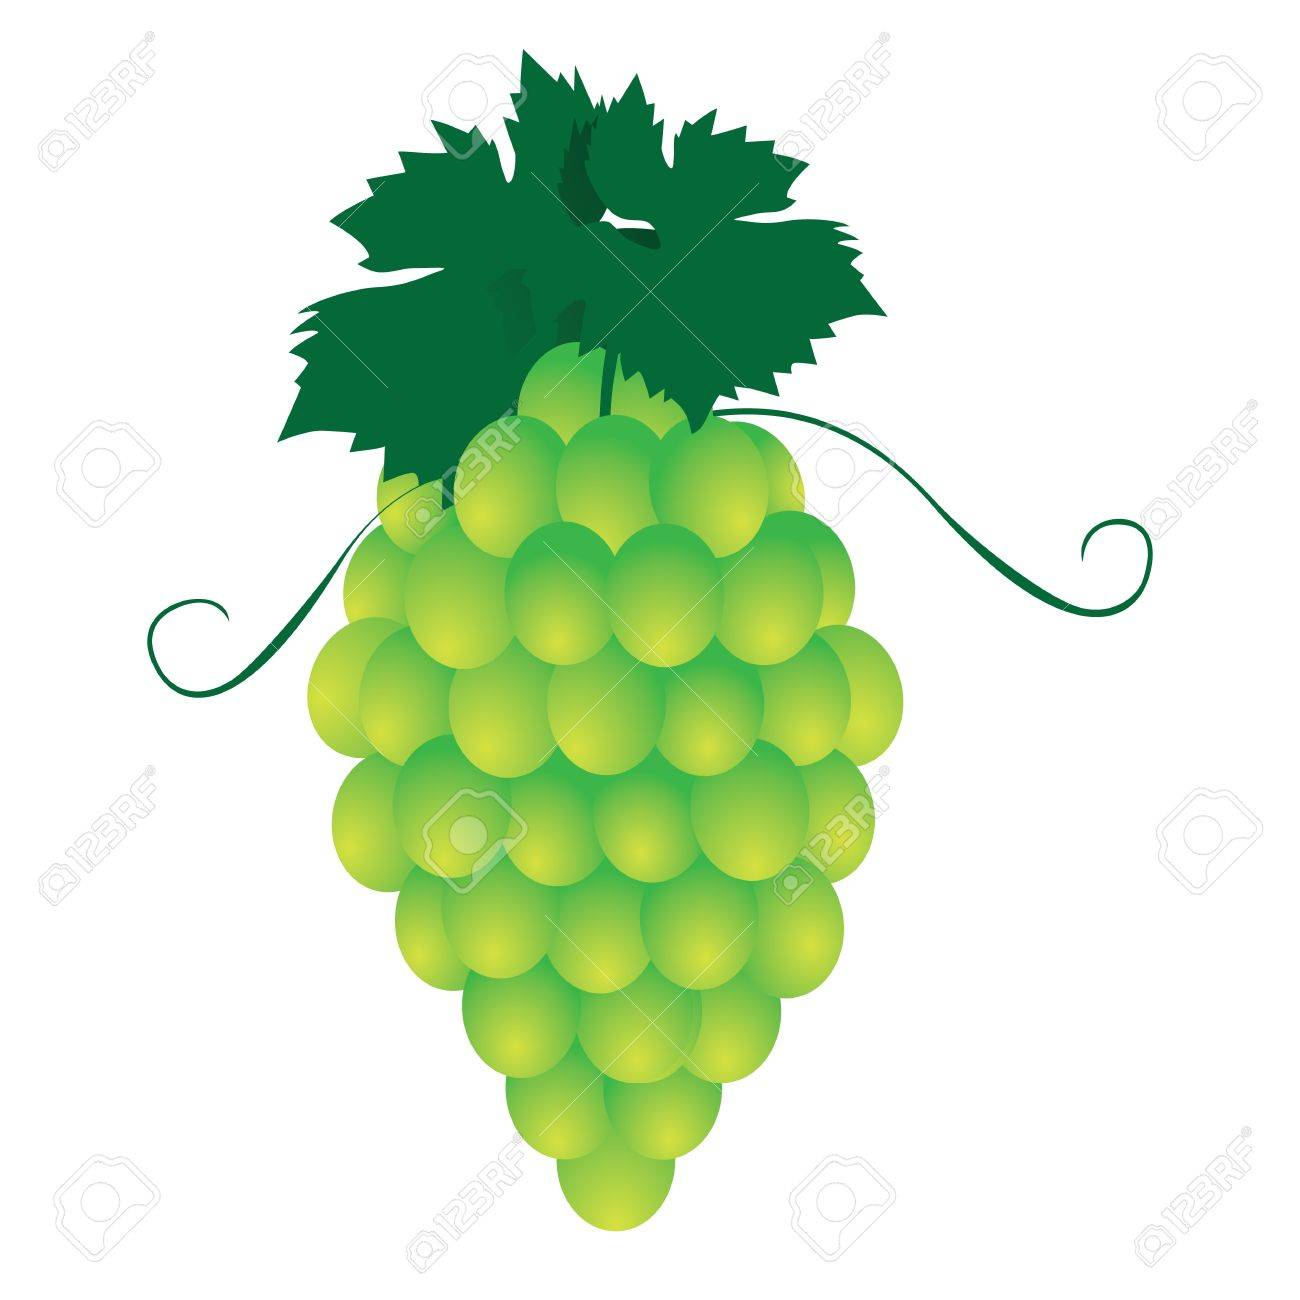 Bunches of grapes. Stock Vector - 17800948